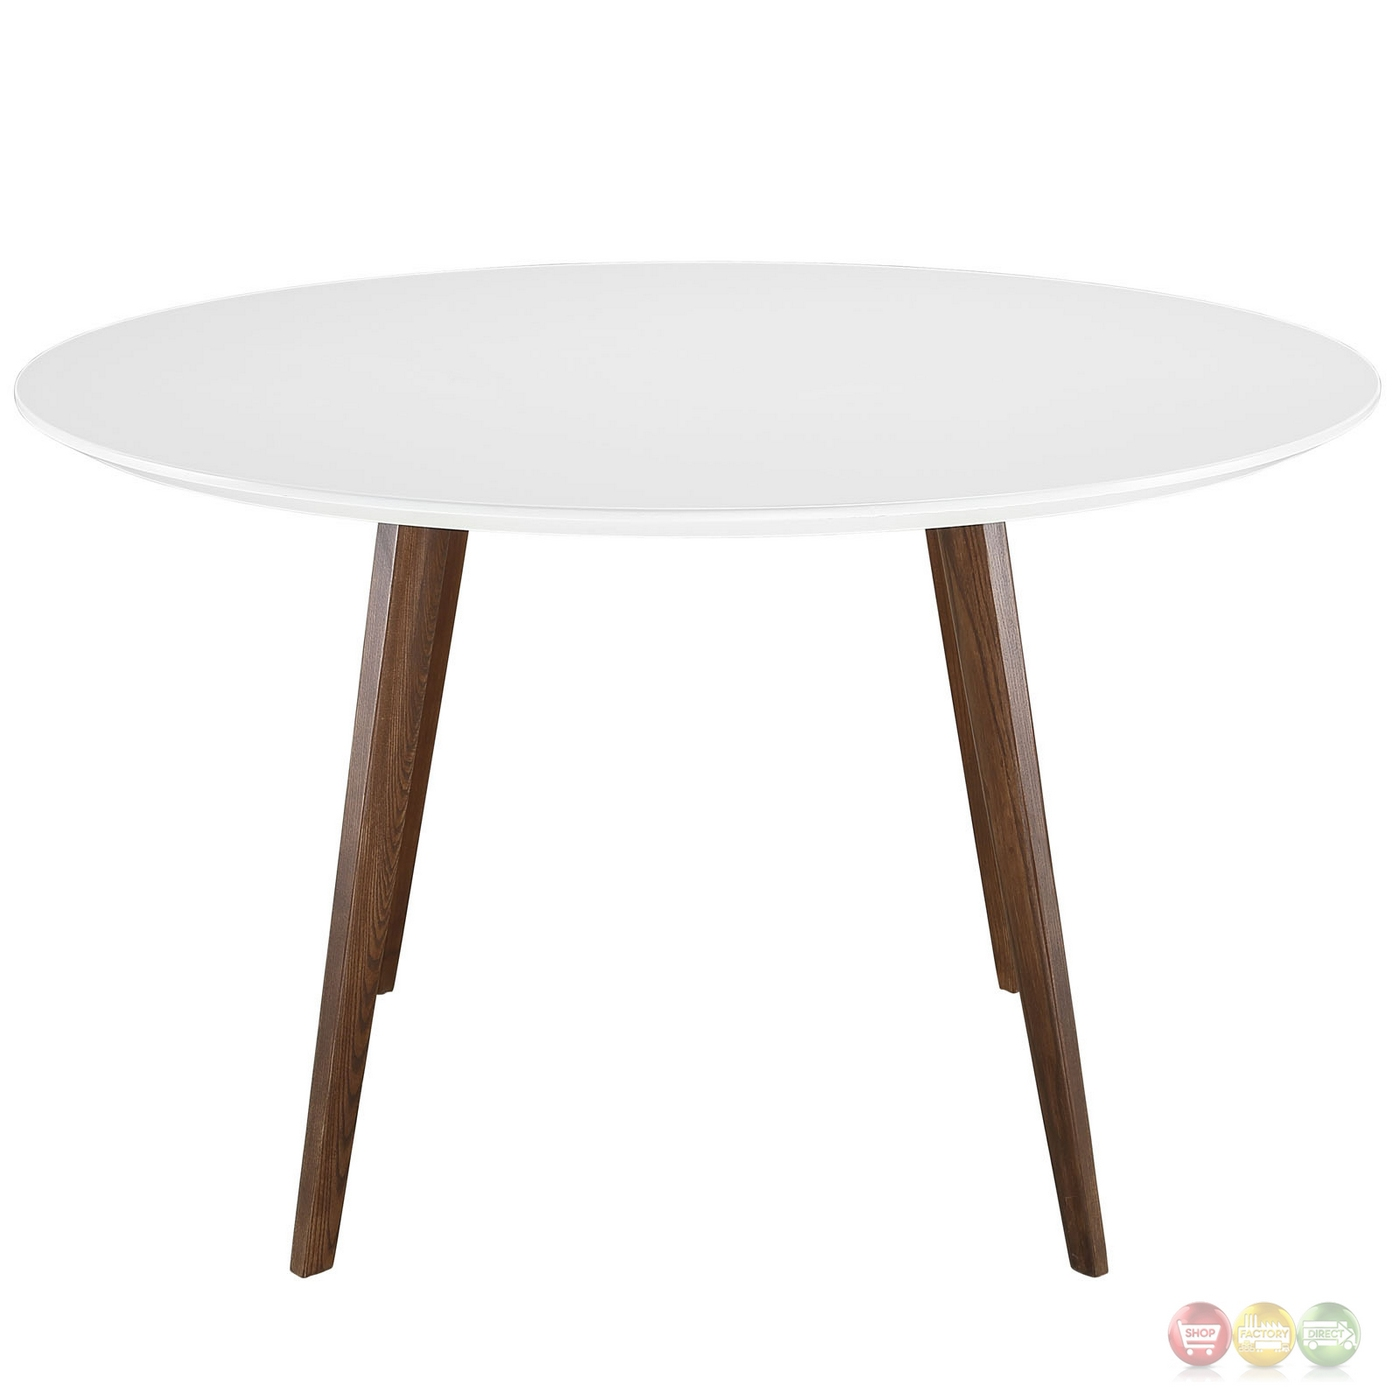 Platter Contemporary 47 Round Wood Dining Table White